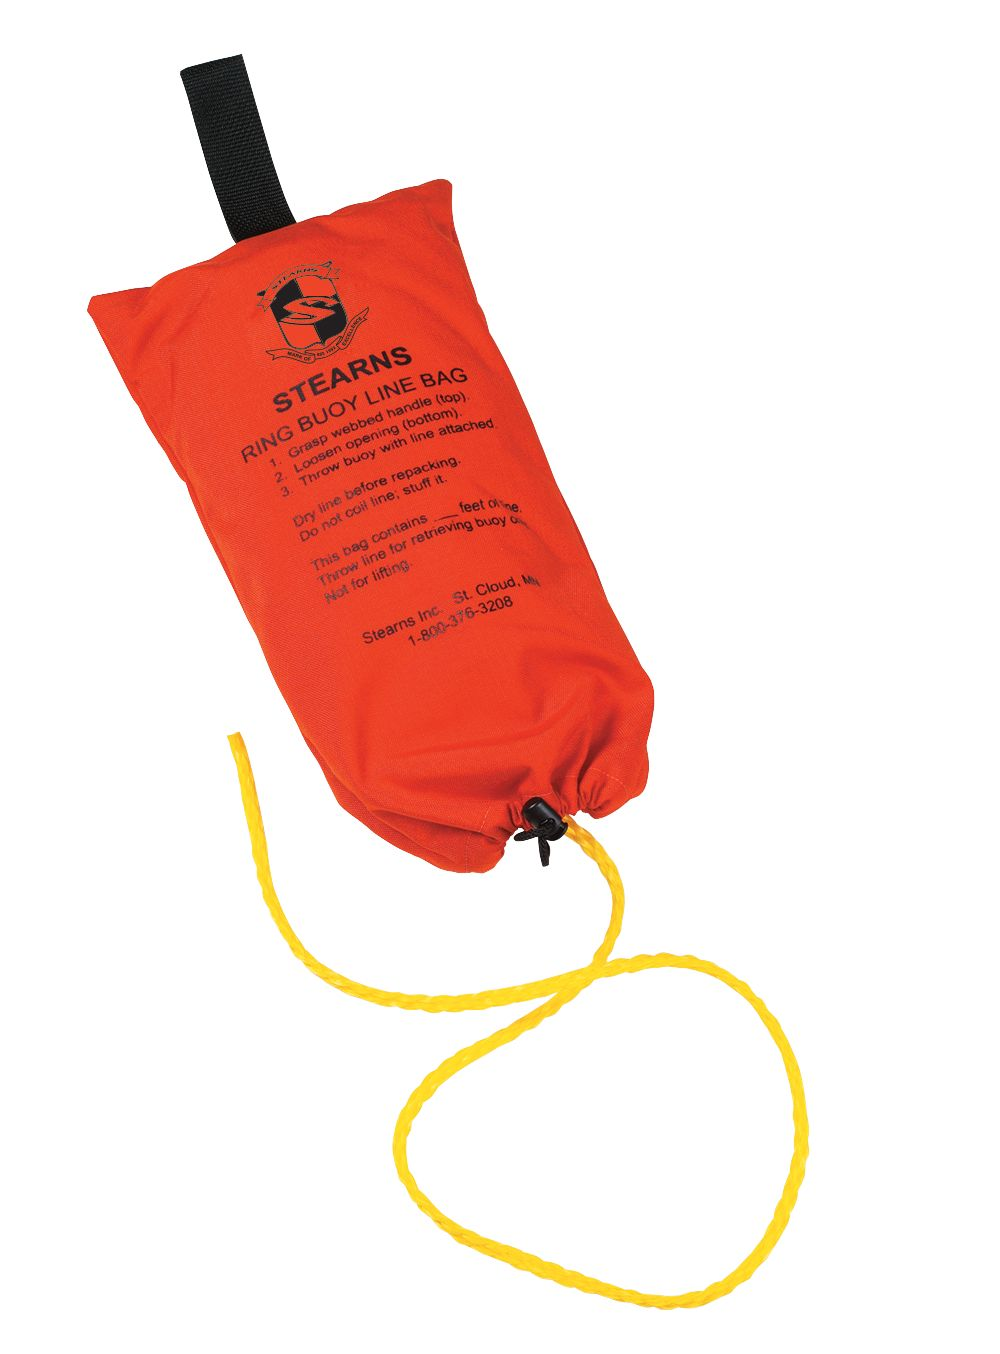 Ring Buoy Rope with Bag - 150 ft.